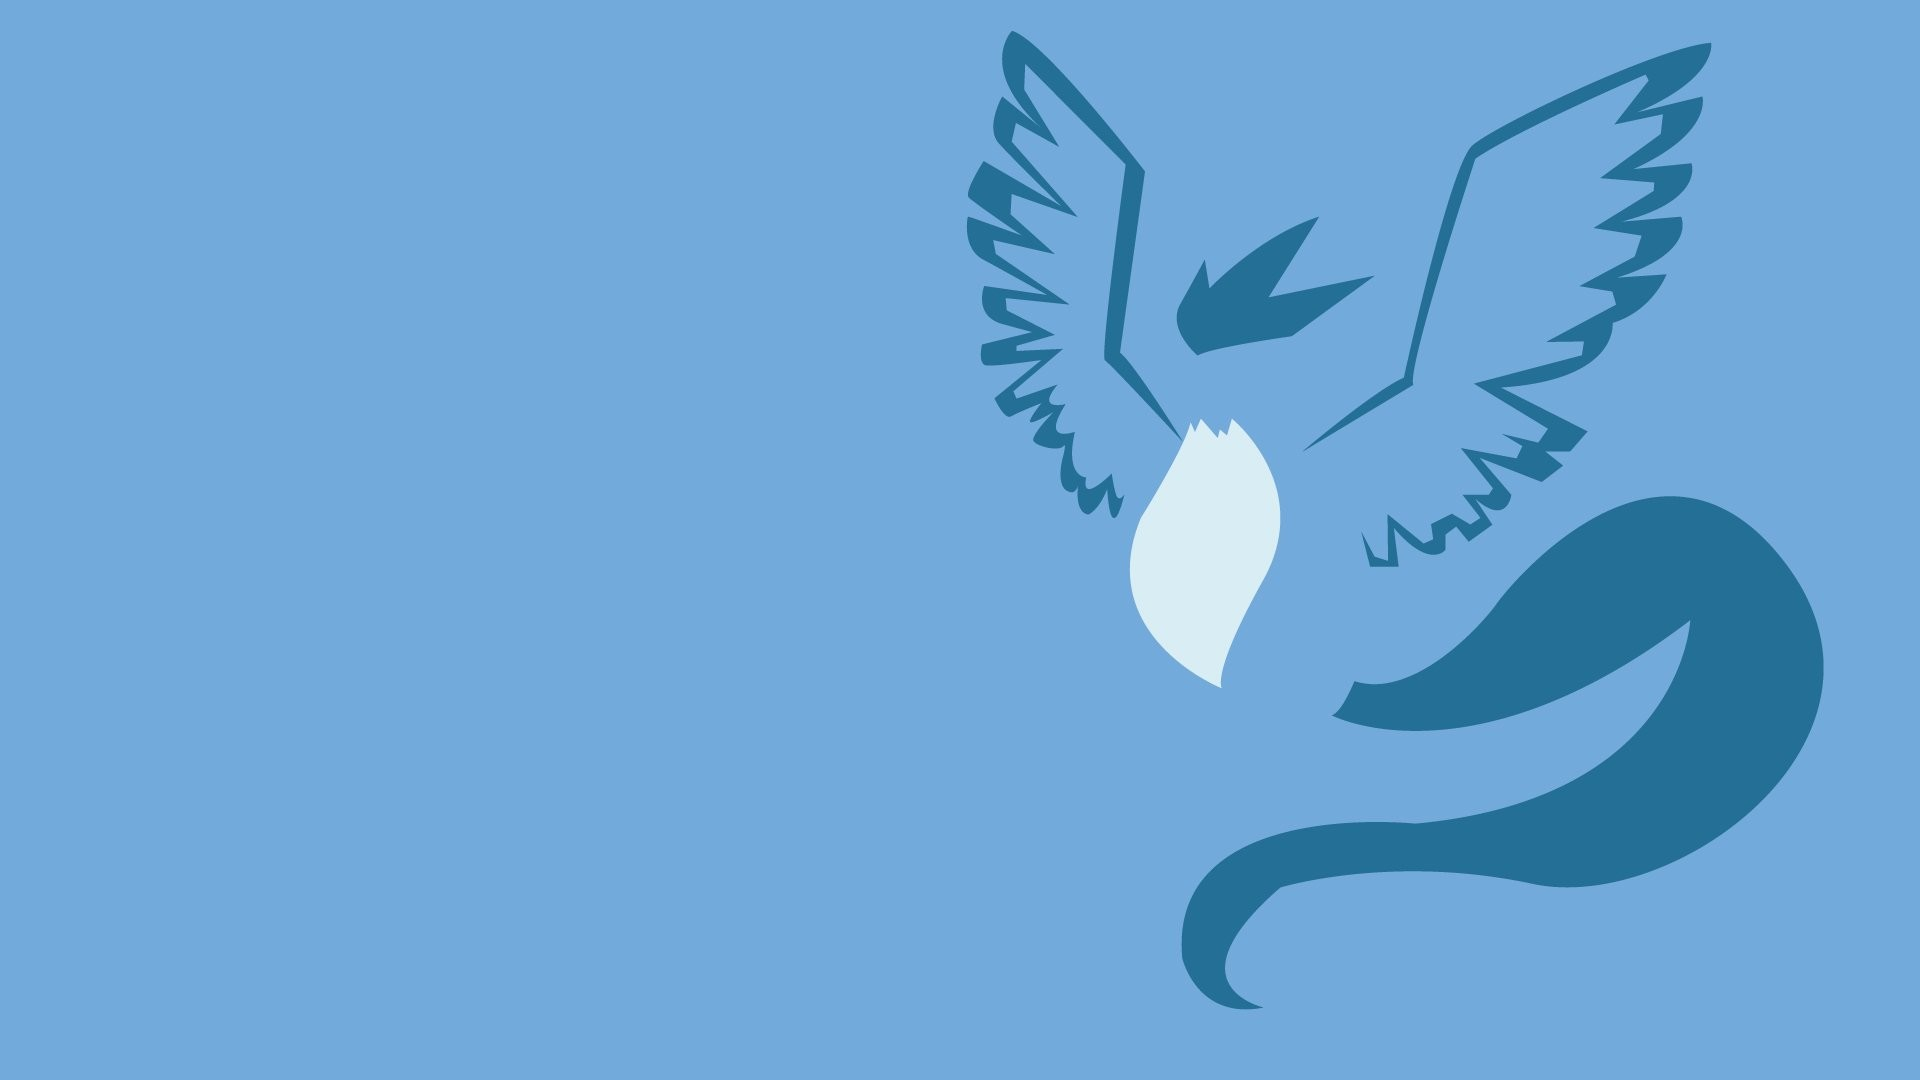 1920x1080 Anime - Pokémon Articuno (Pokémon) Legendary Pokémon Wallpaper